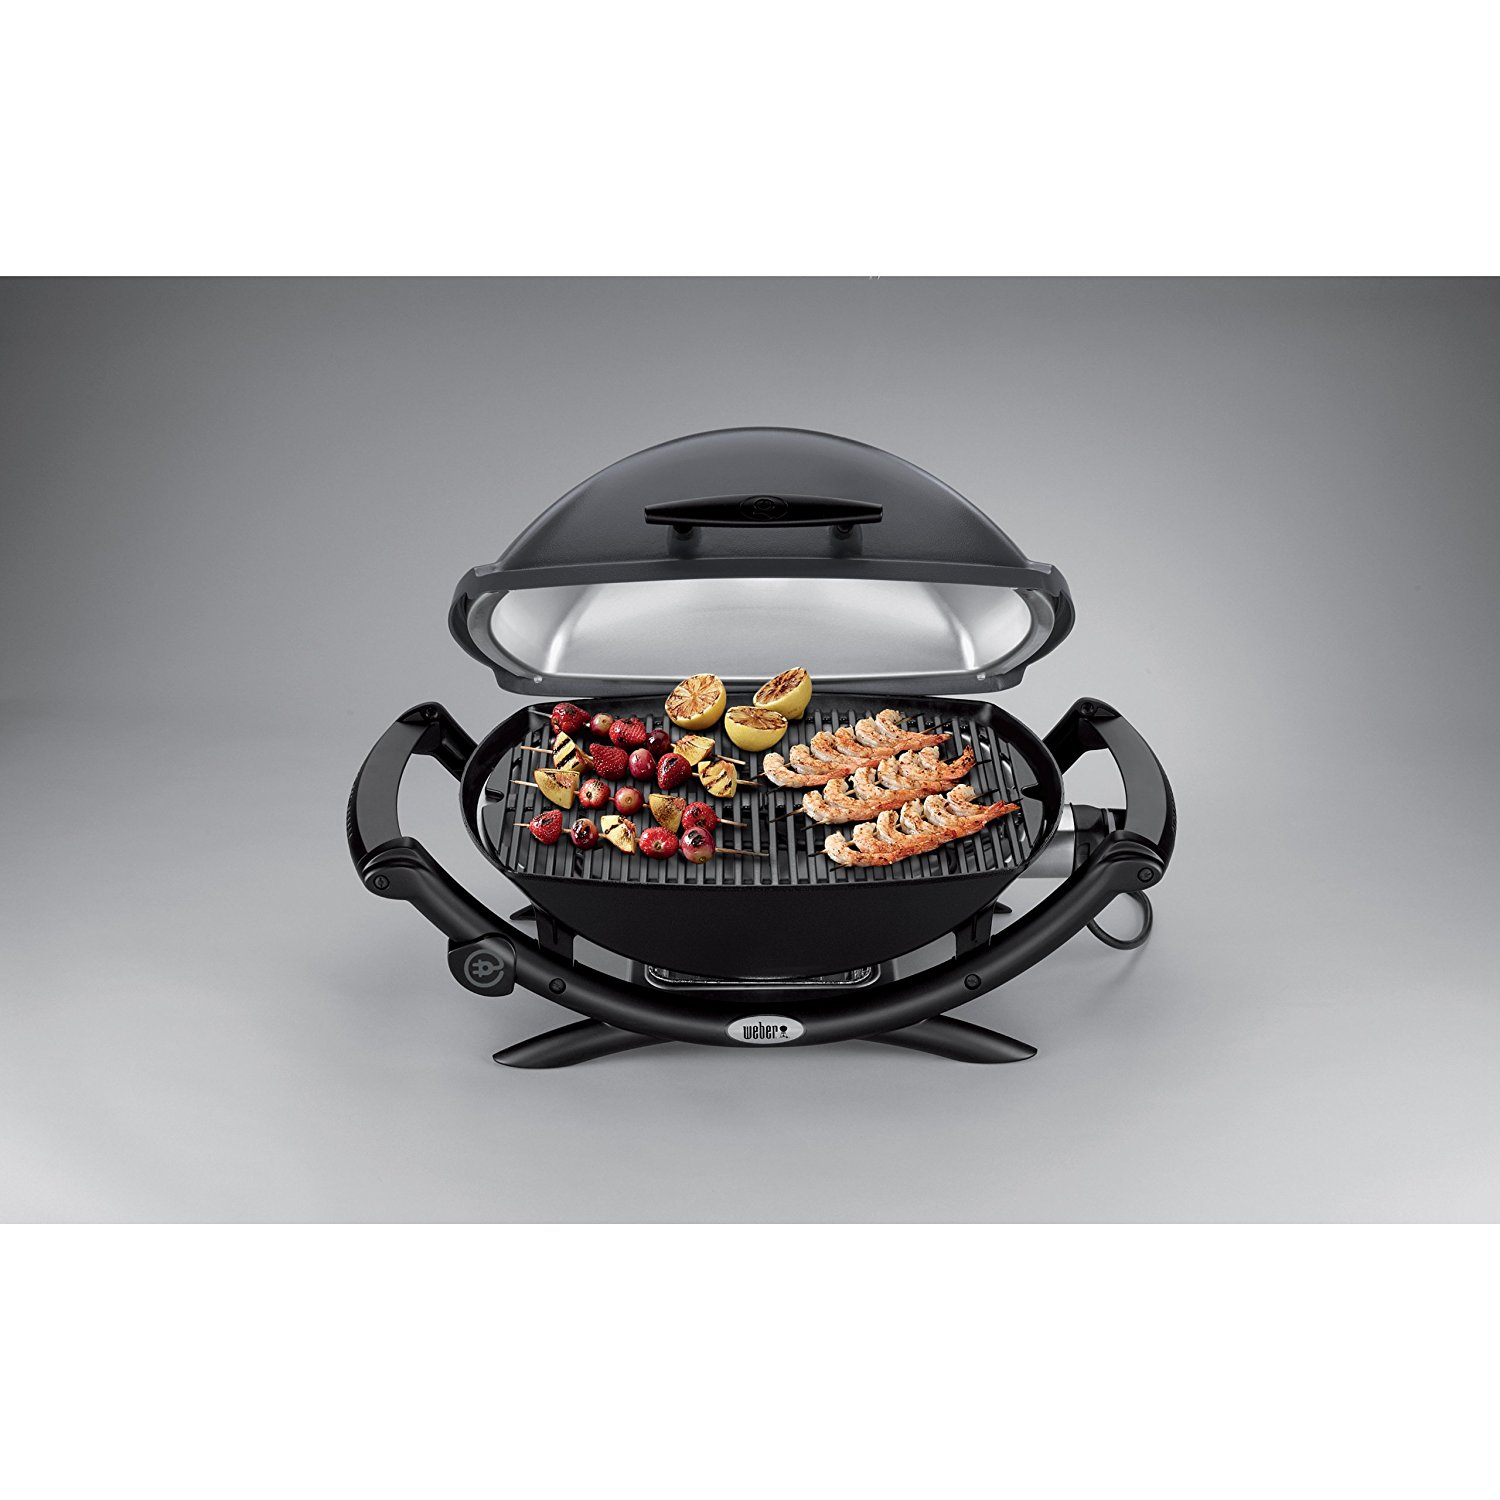 weber q 2400 electric grill review electric grill reviews. Black Bedroom Furniture Sets. Home Design Ideas